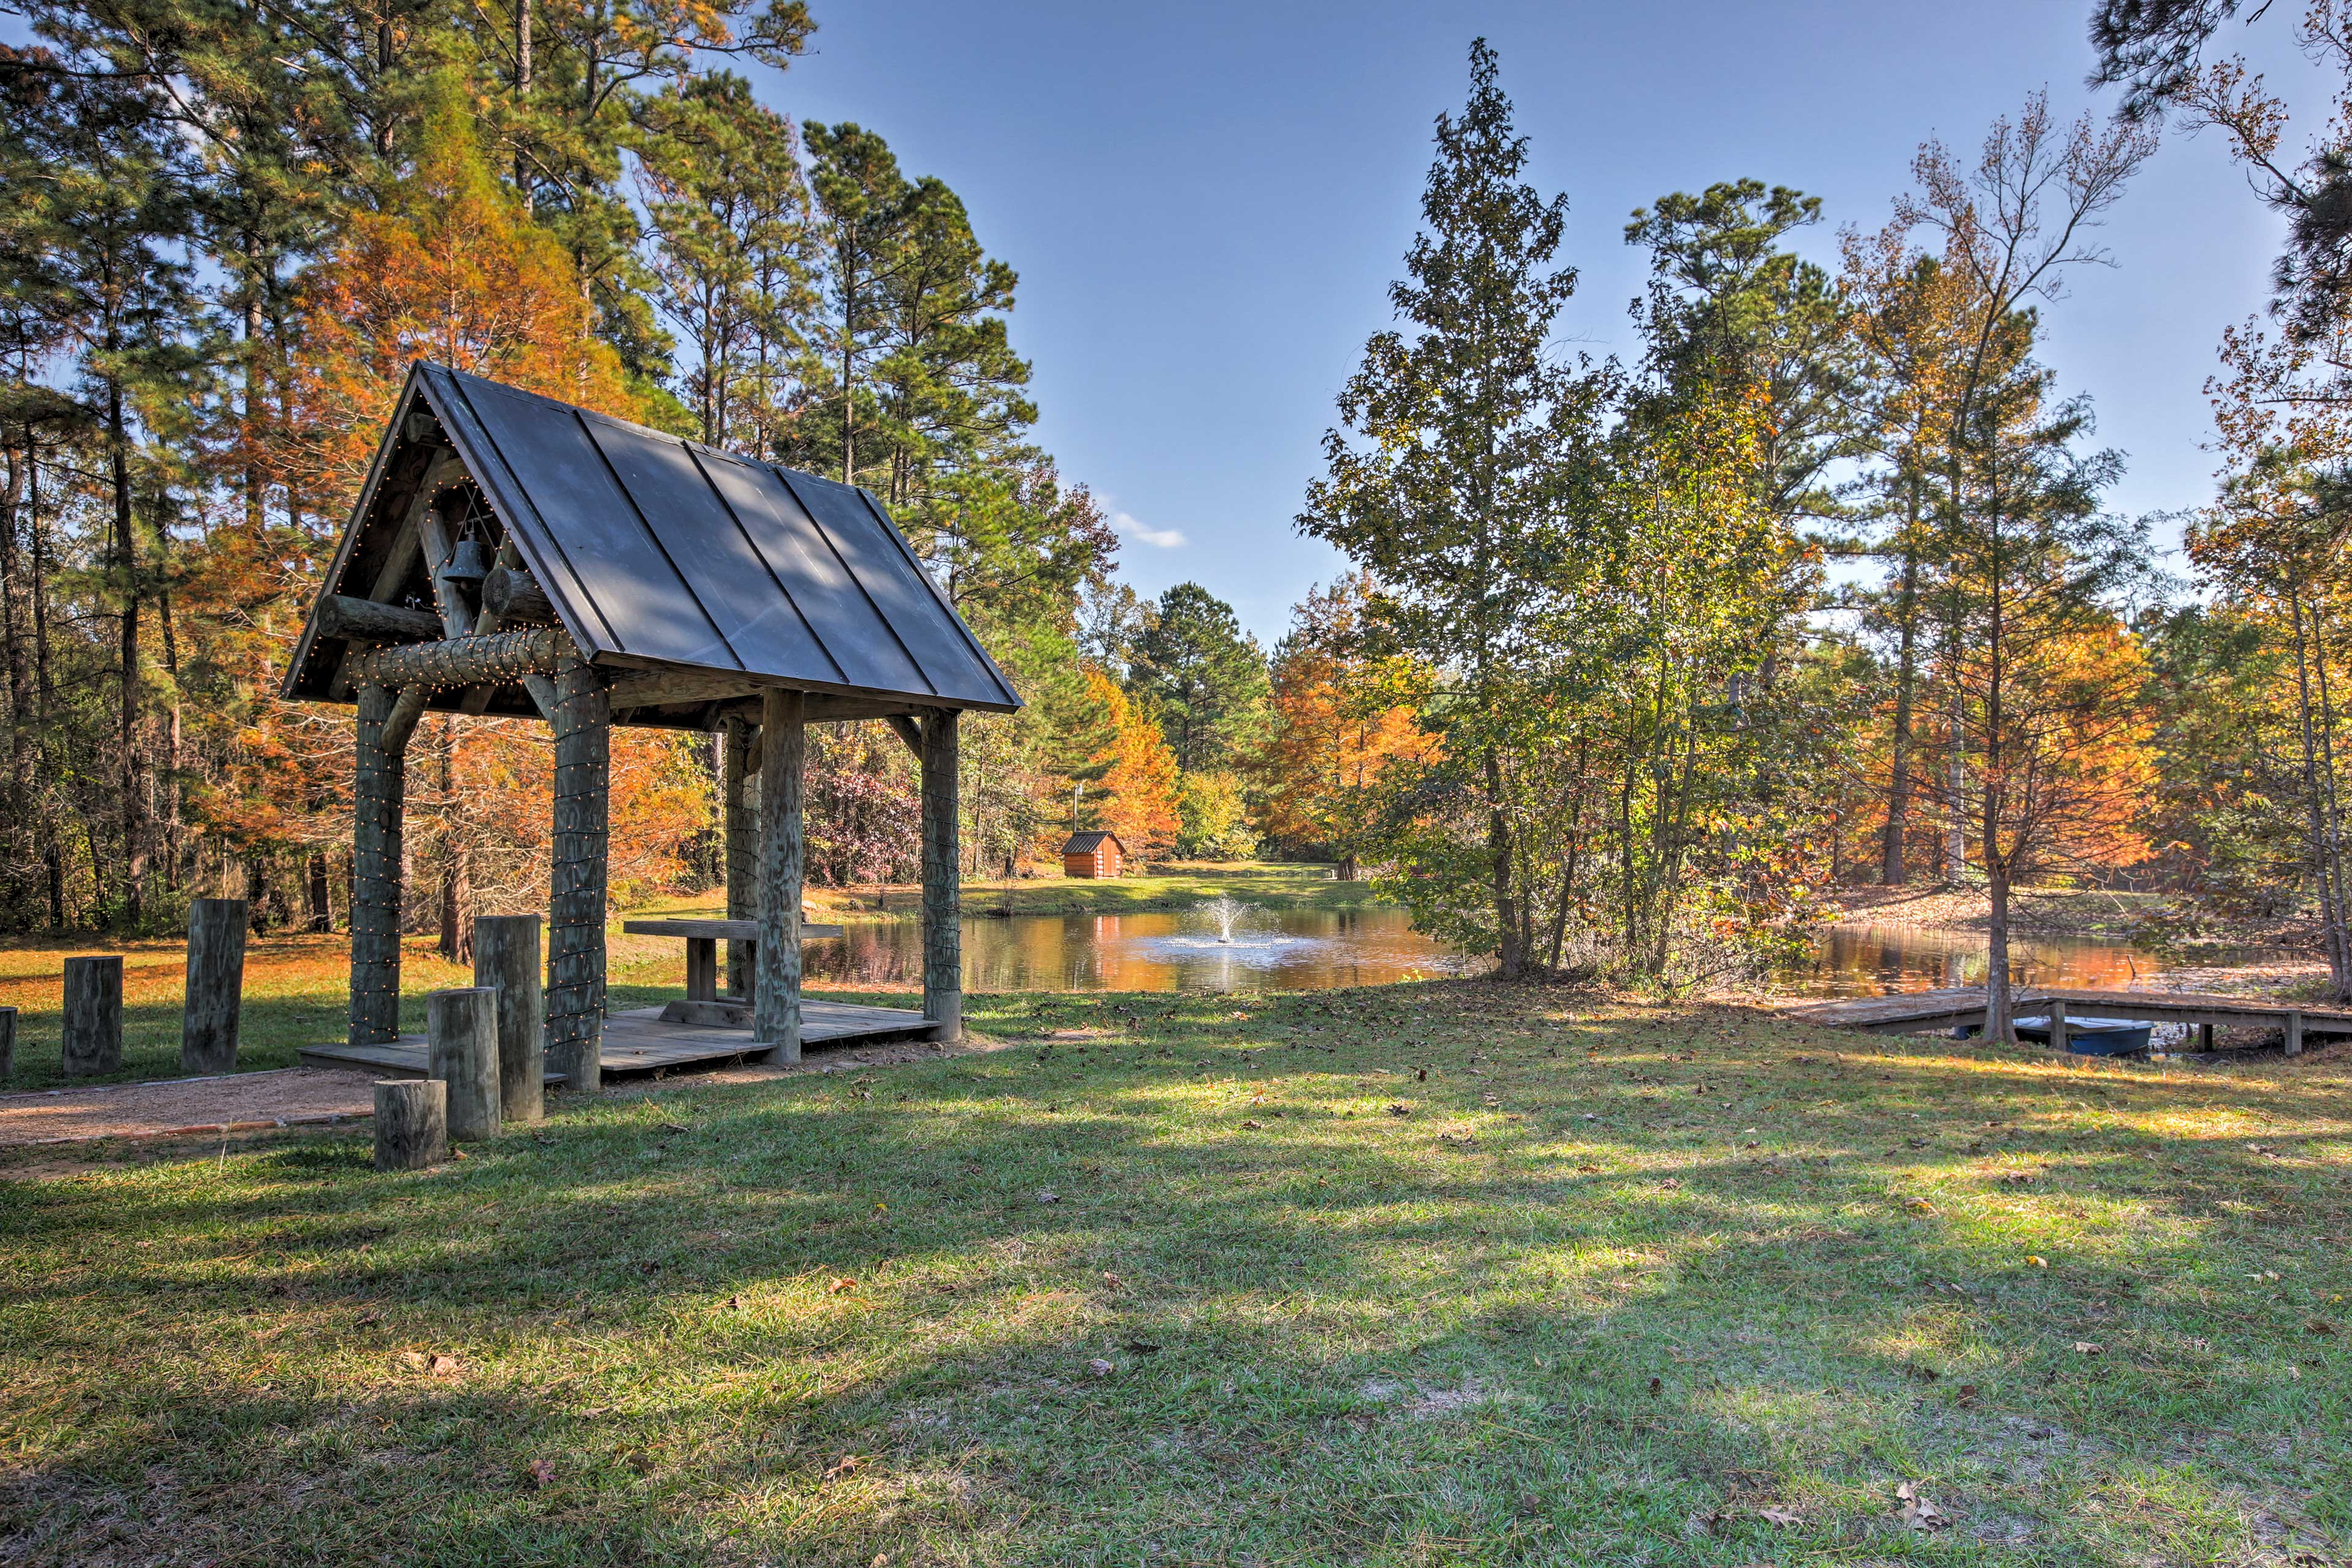 Bring a picnic to the covered gazebo!